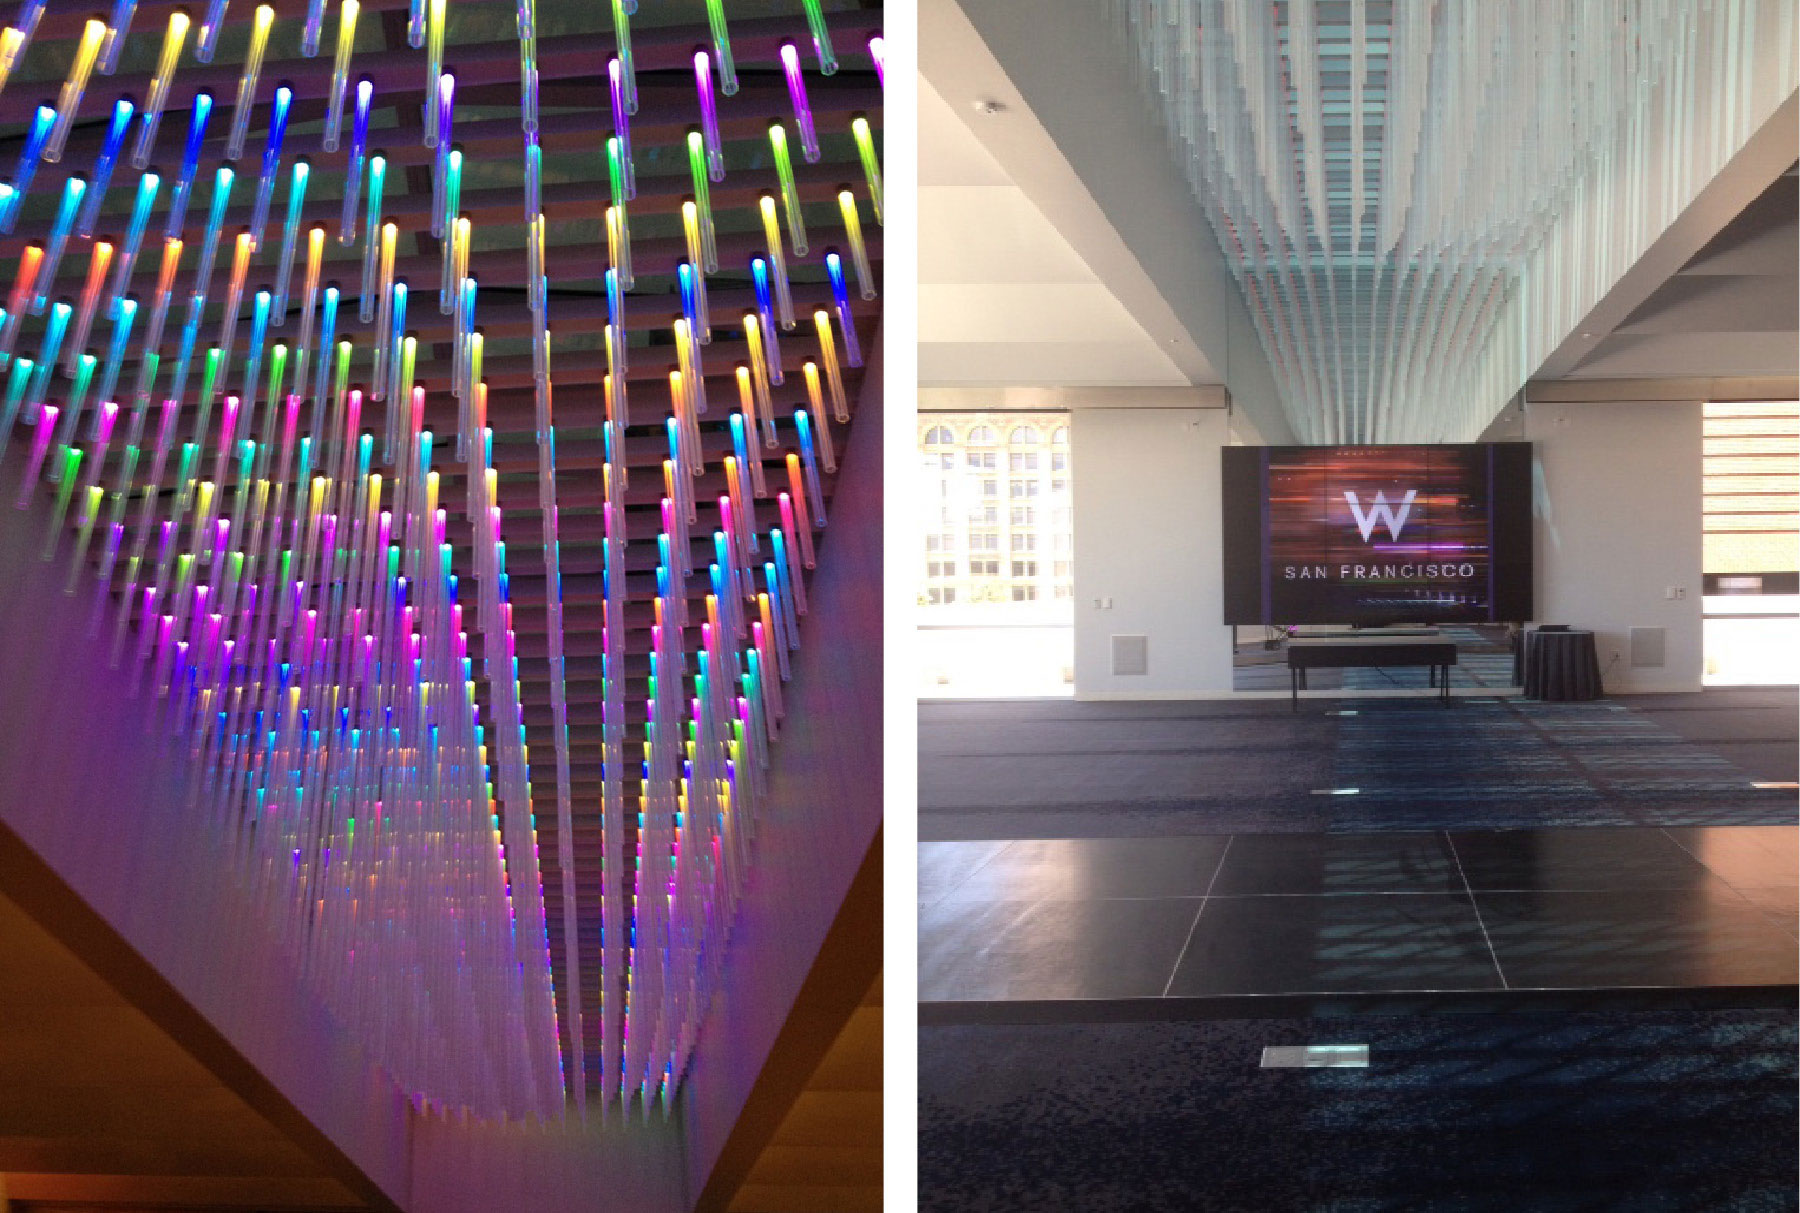 Conference room lighting for W Hotel made with acrylic rods and color changing LEDs by Arktura Solutions Studio